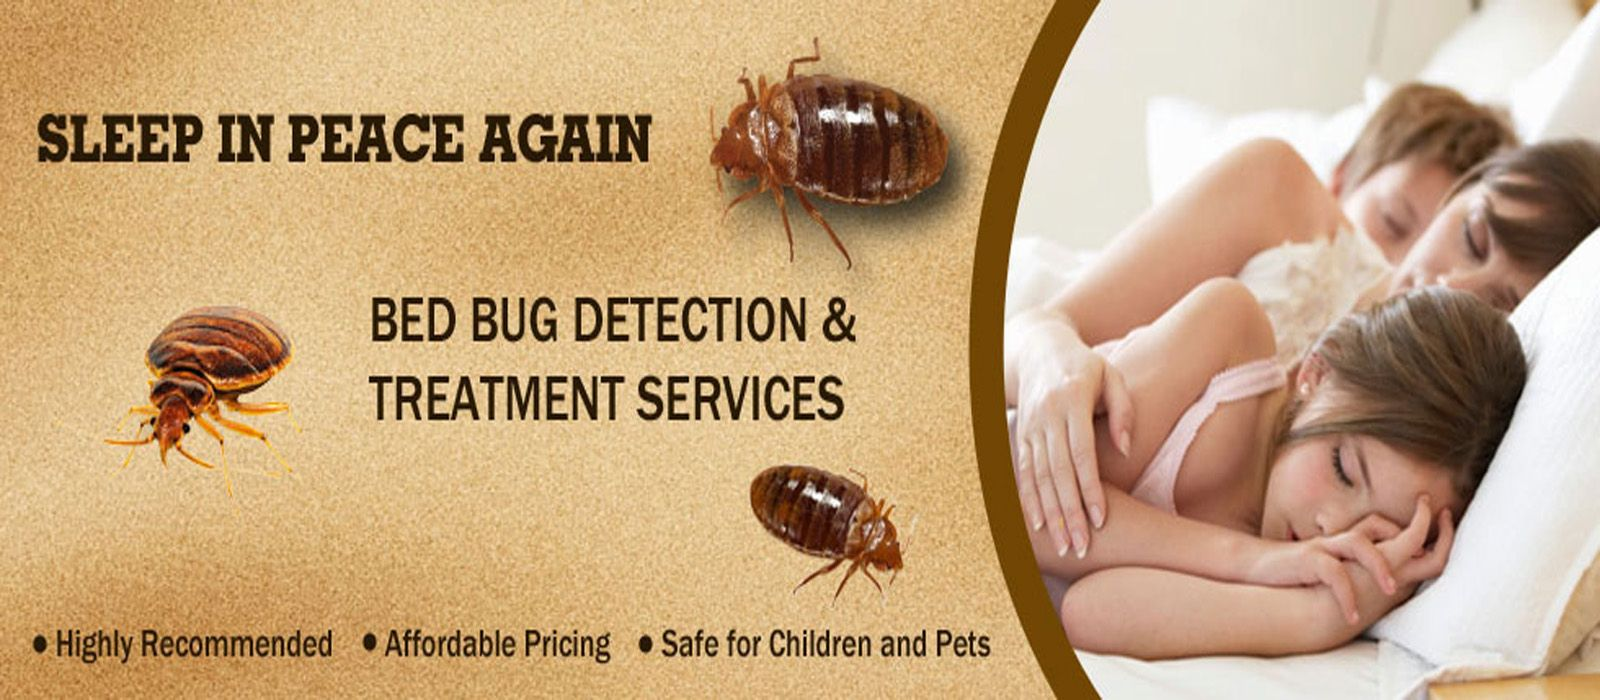 Pin on Pest control in New York Best Bed Bugs Control